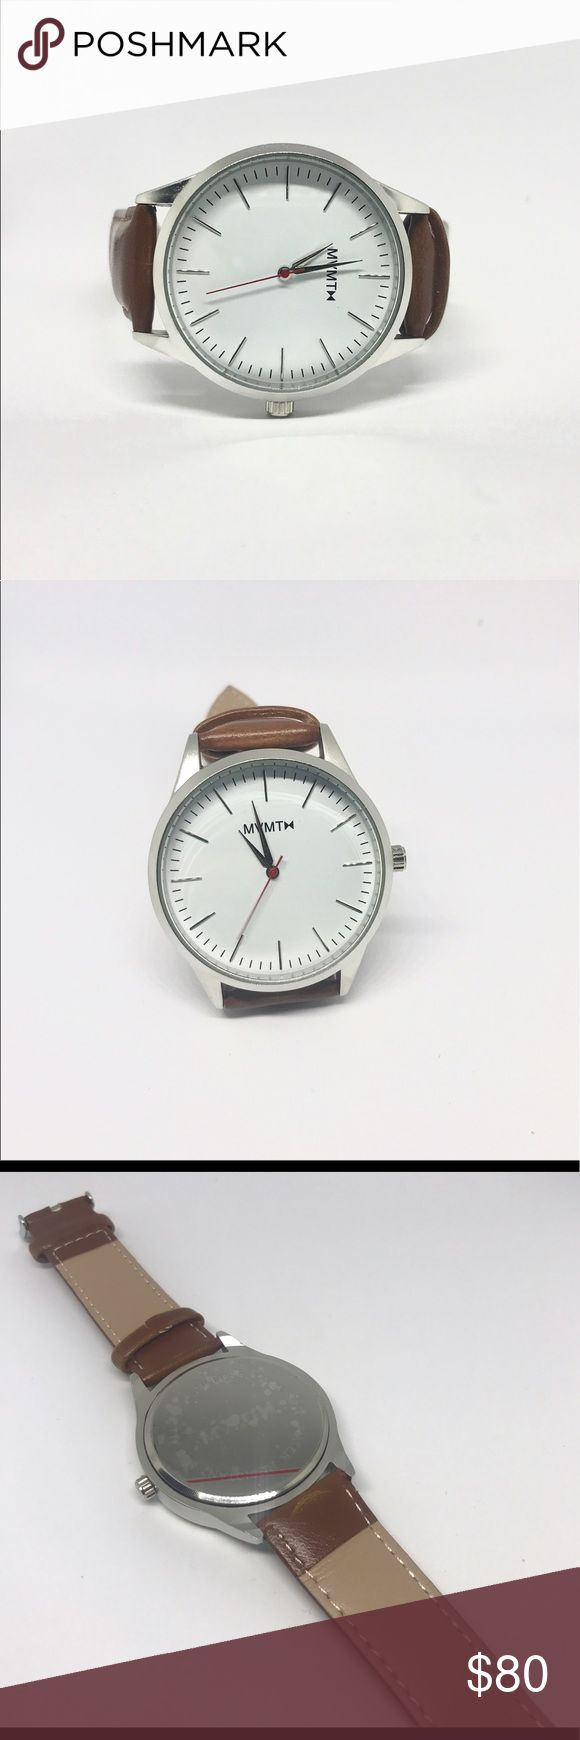 Men's MVMT leather strap white/silver watch Hello! For sale is a MVMT watch! It is new without the box. Great watch that can be worn formally or casually. Great for summer too!    Tags: mvmt watch, Rolex, citizen, Timex weekender, military sub, submariner, Daniel Wellington, Kate spade, Michael kors, fossil Accessories Watches